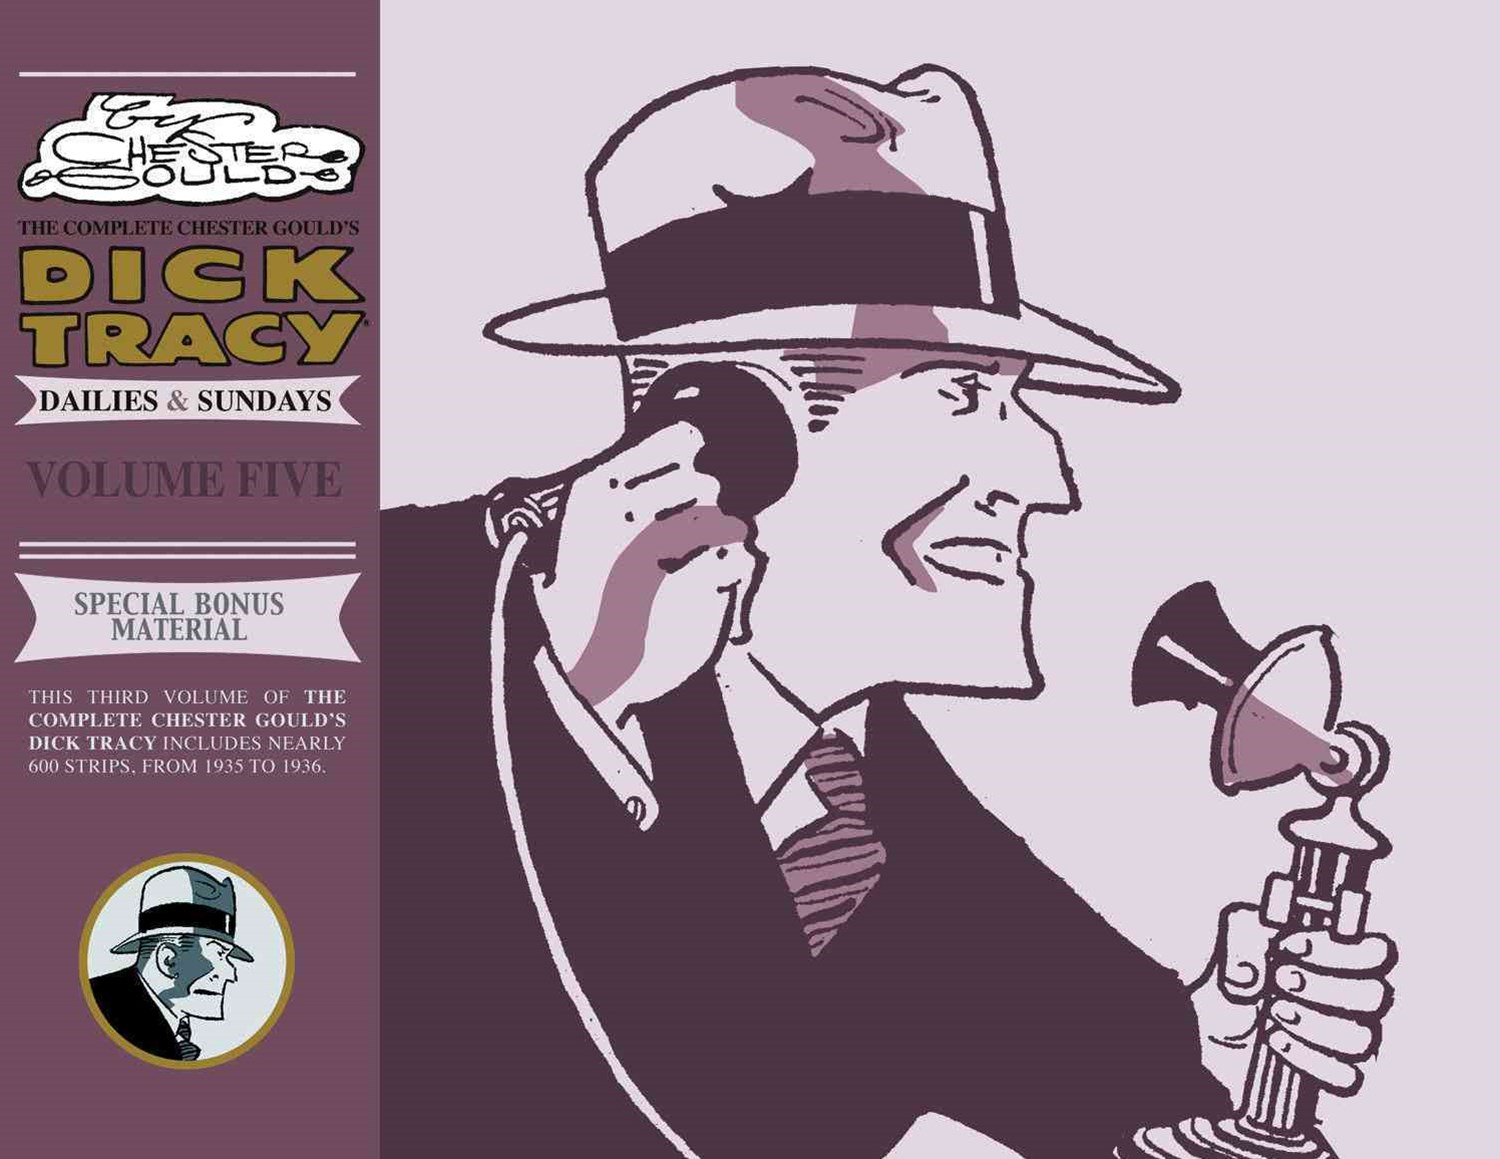 Complete Chester Gould's &quote;Dick Tracy&quote;